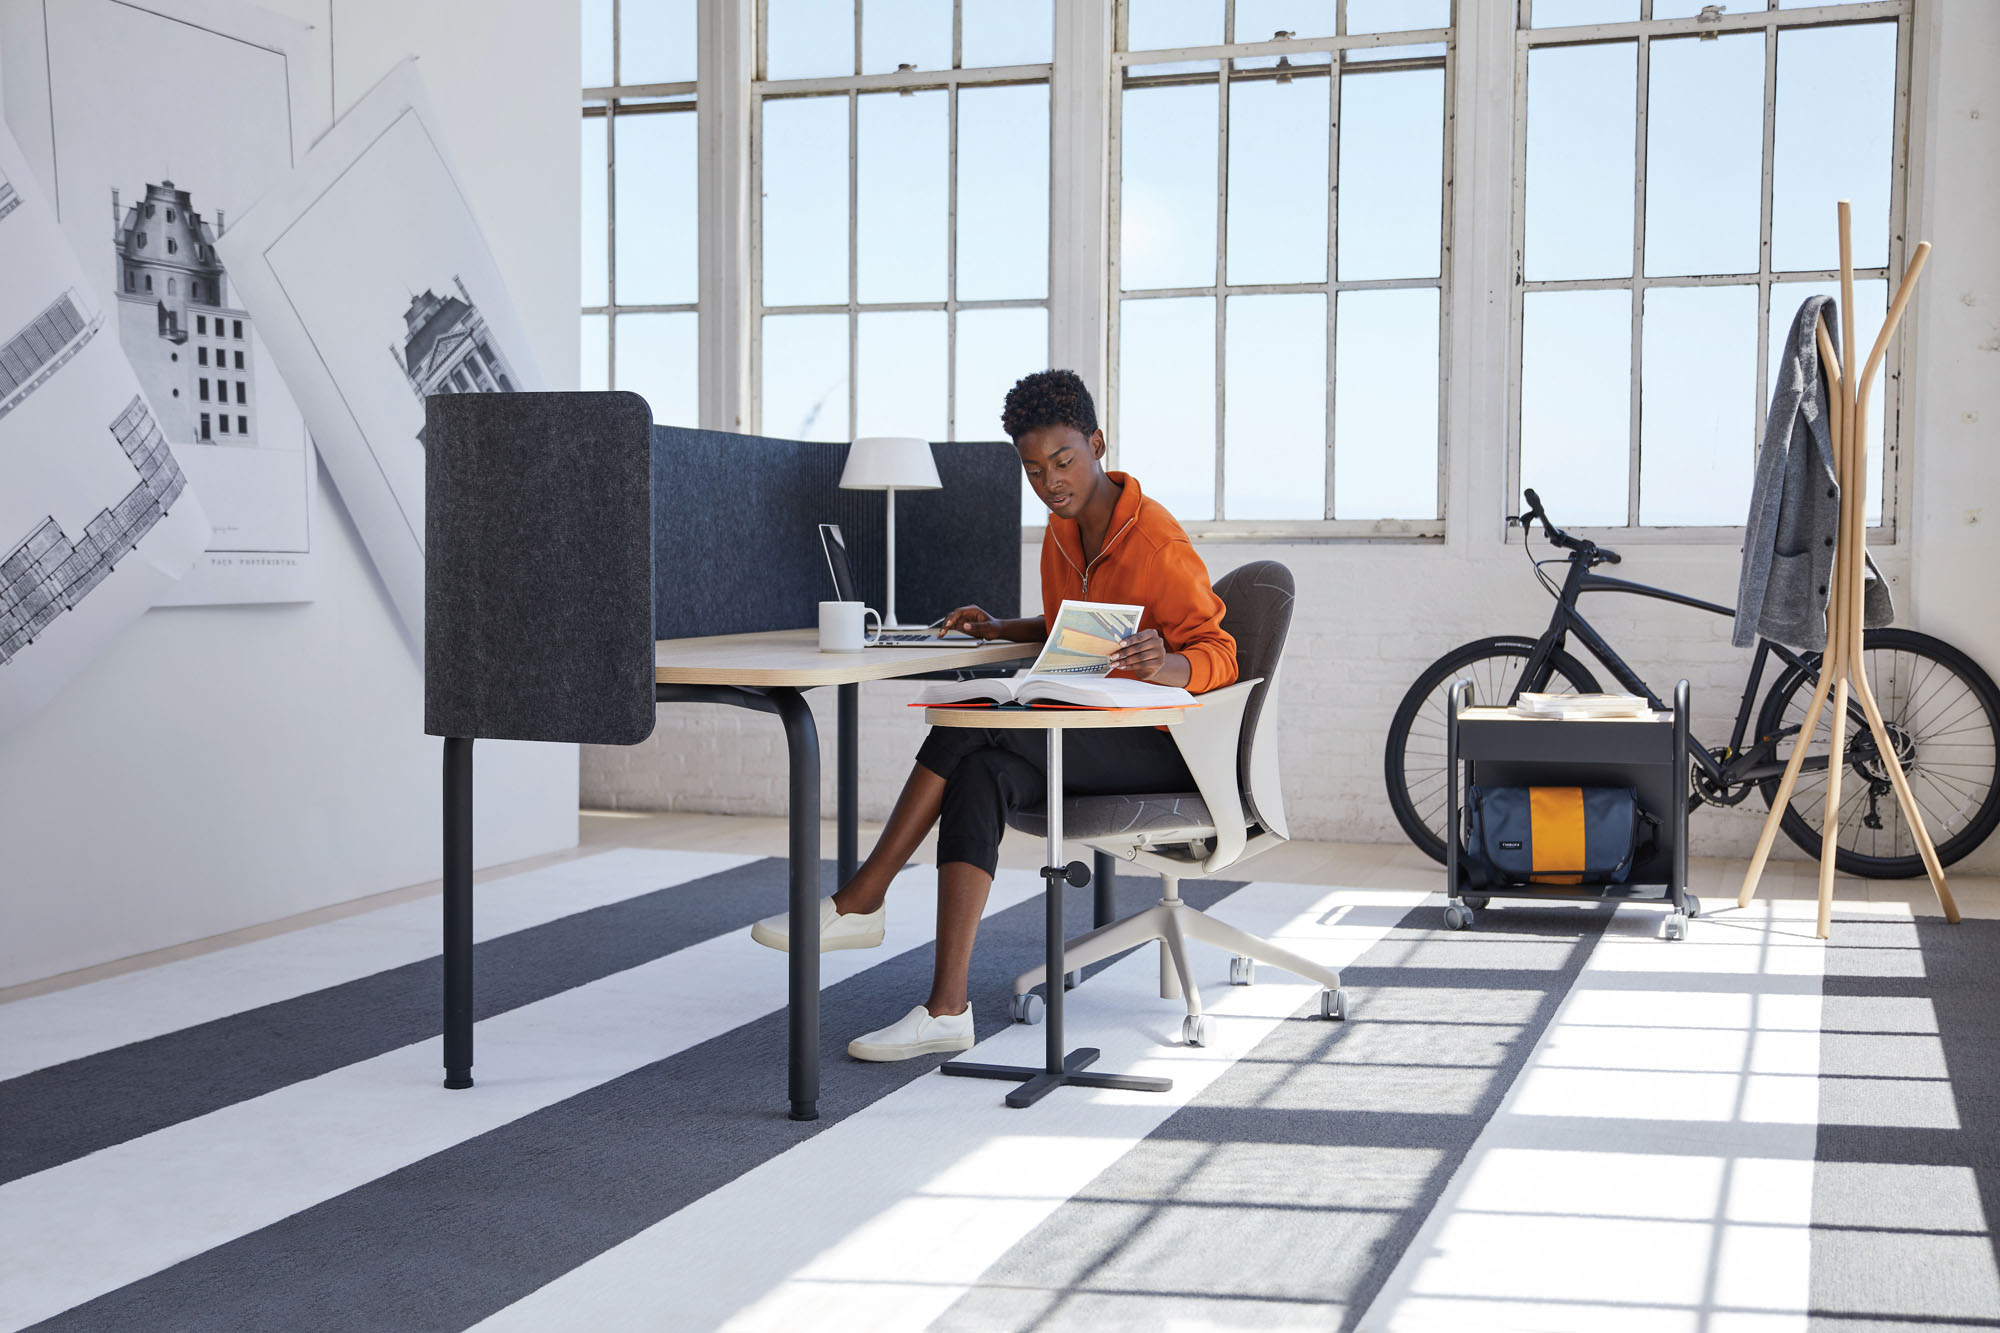 a mobile workstation and side table.